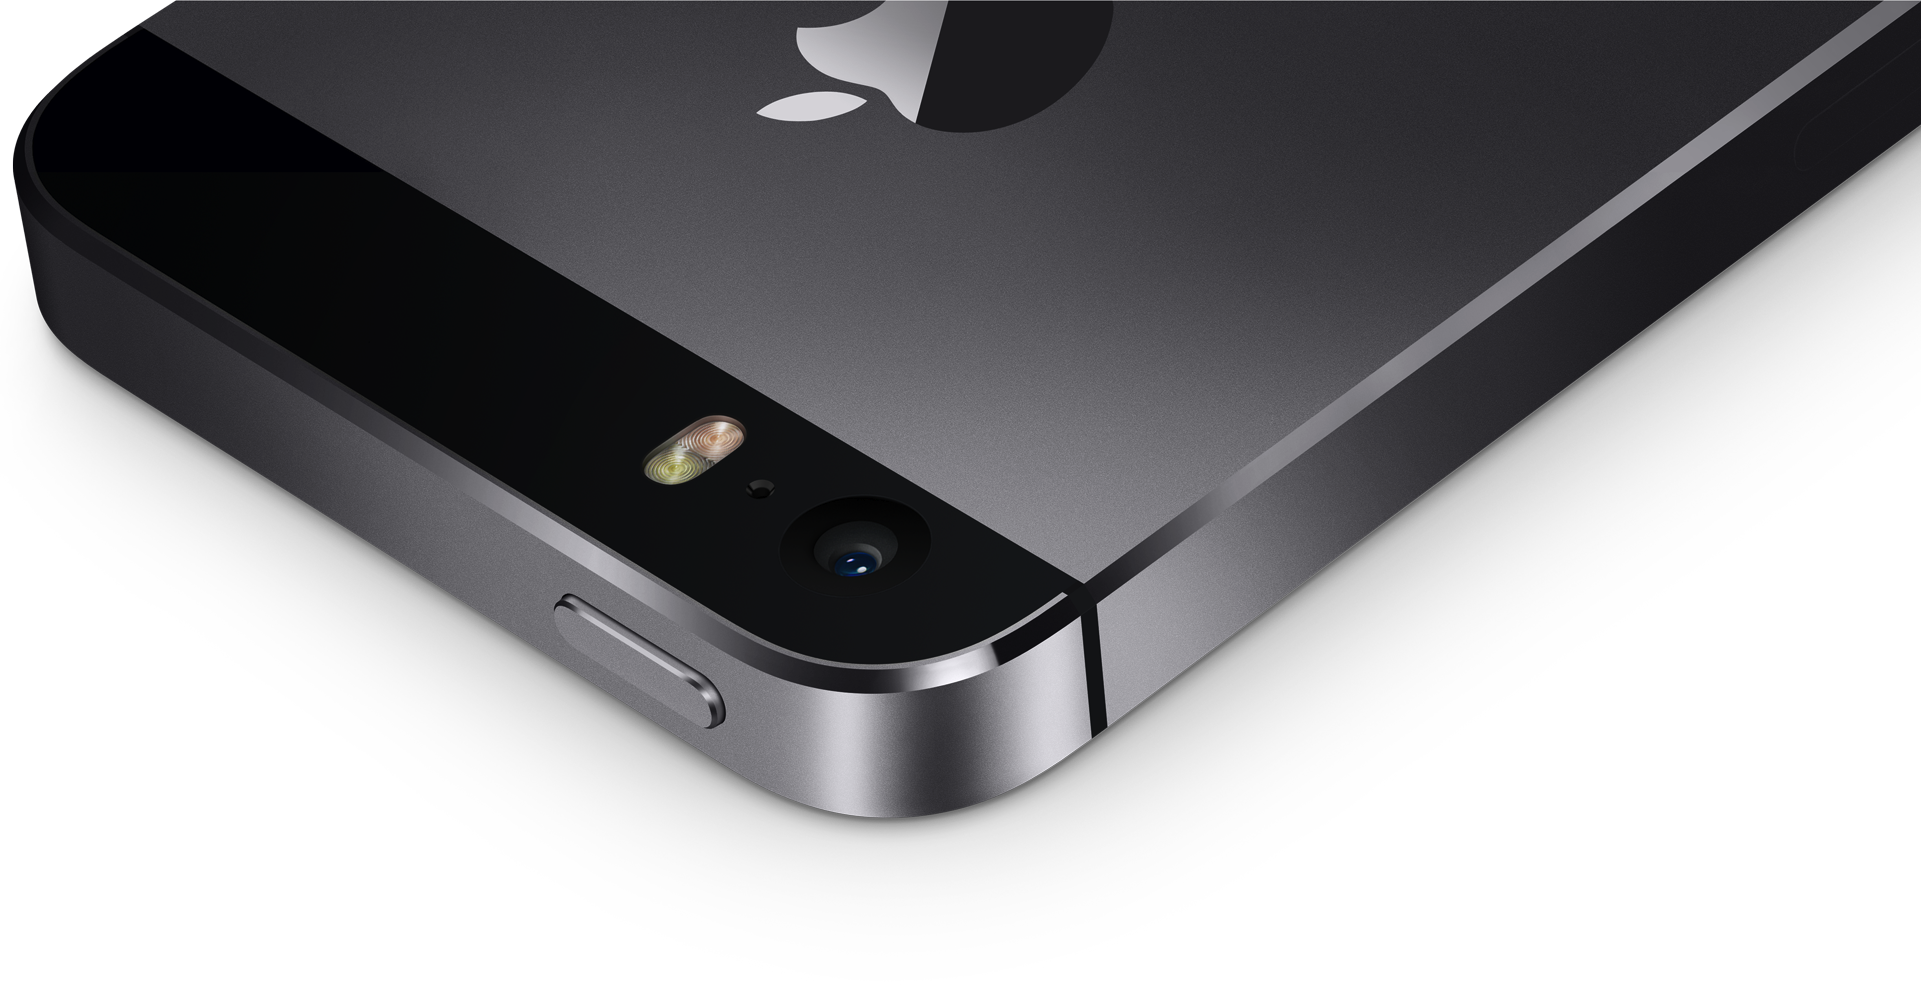 Space gray iPhone 5s camera